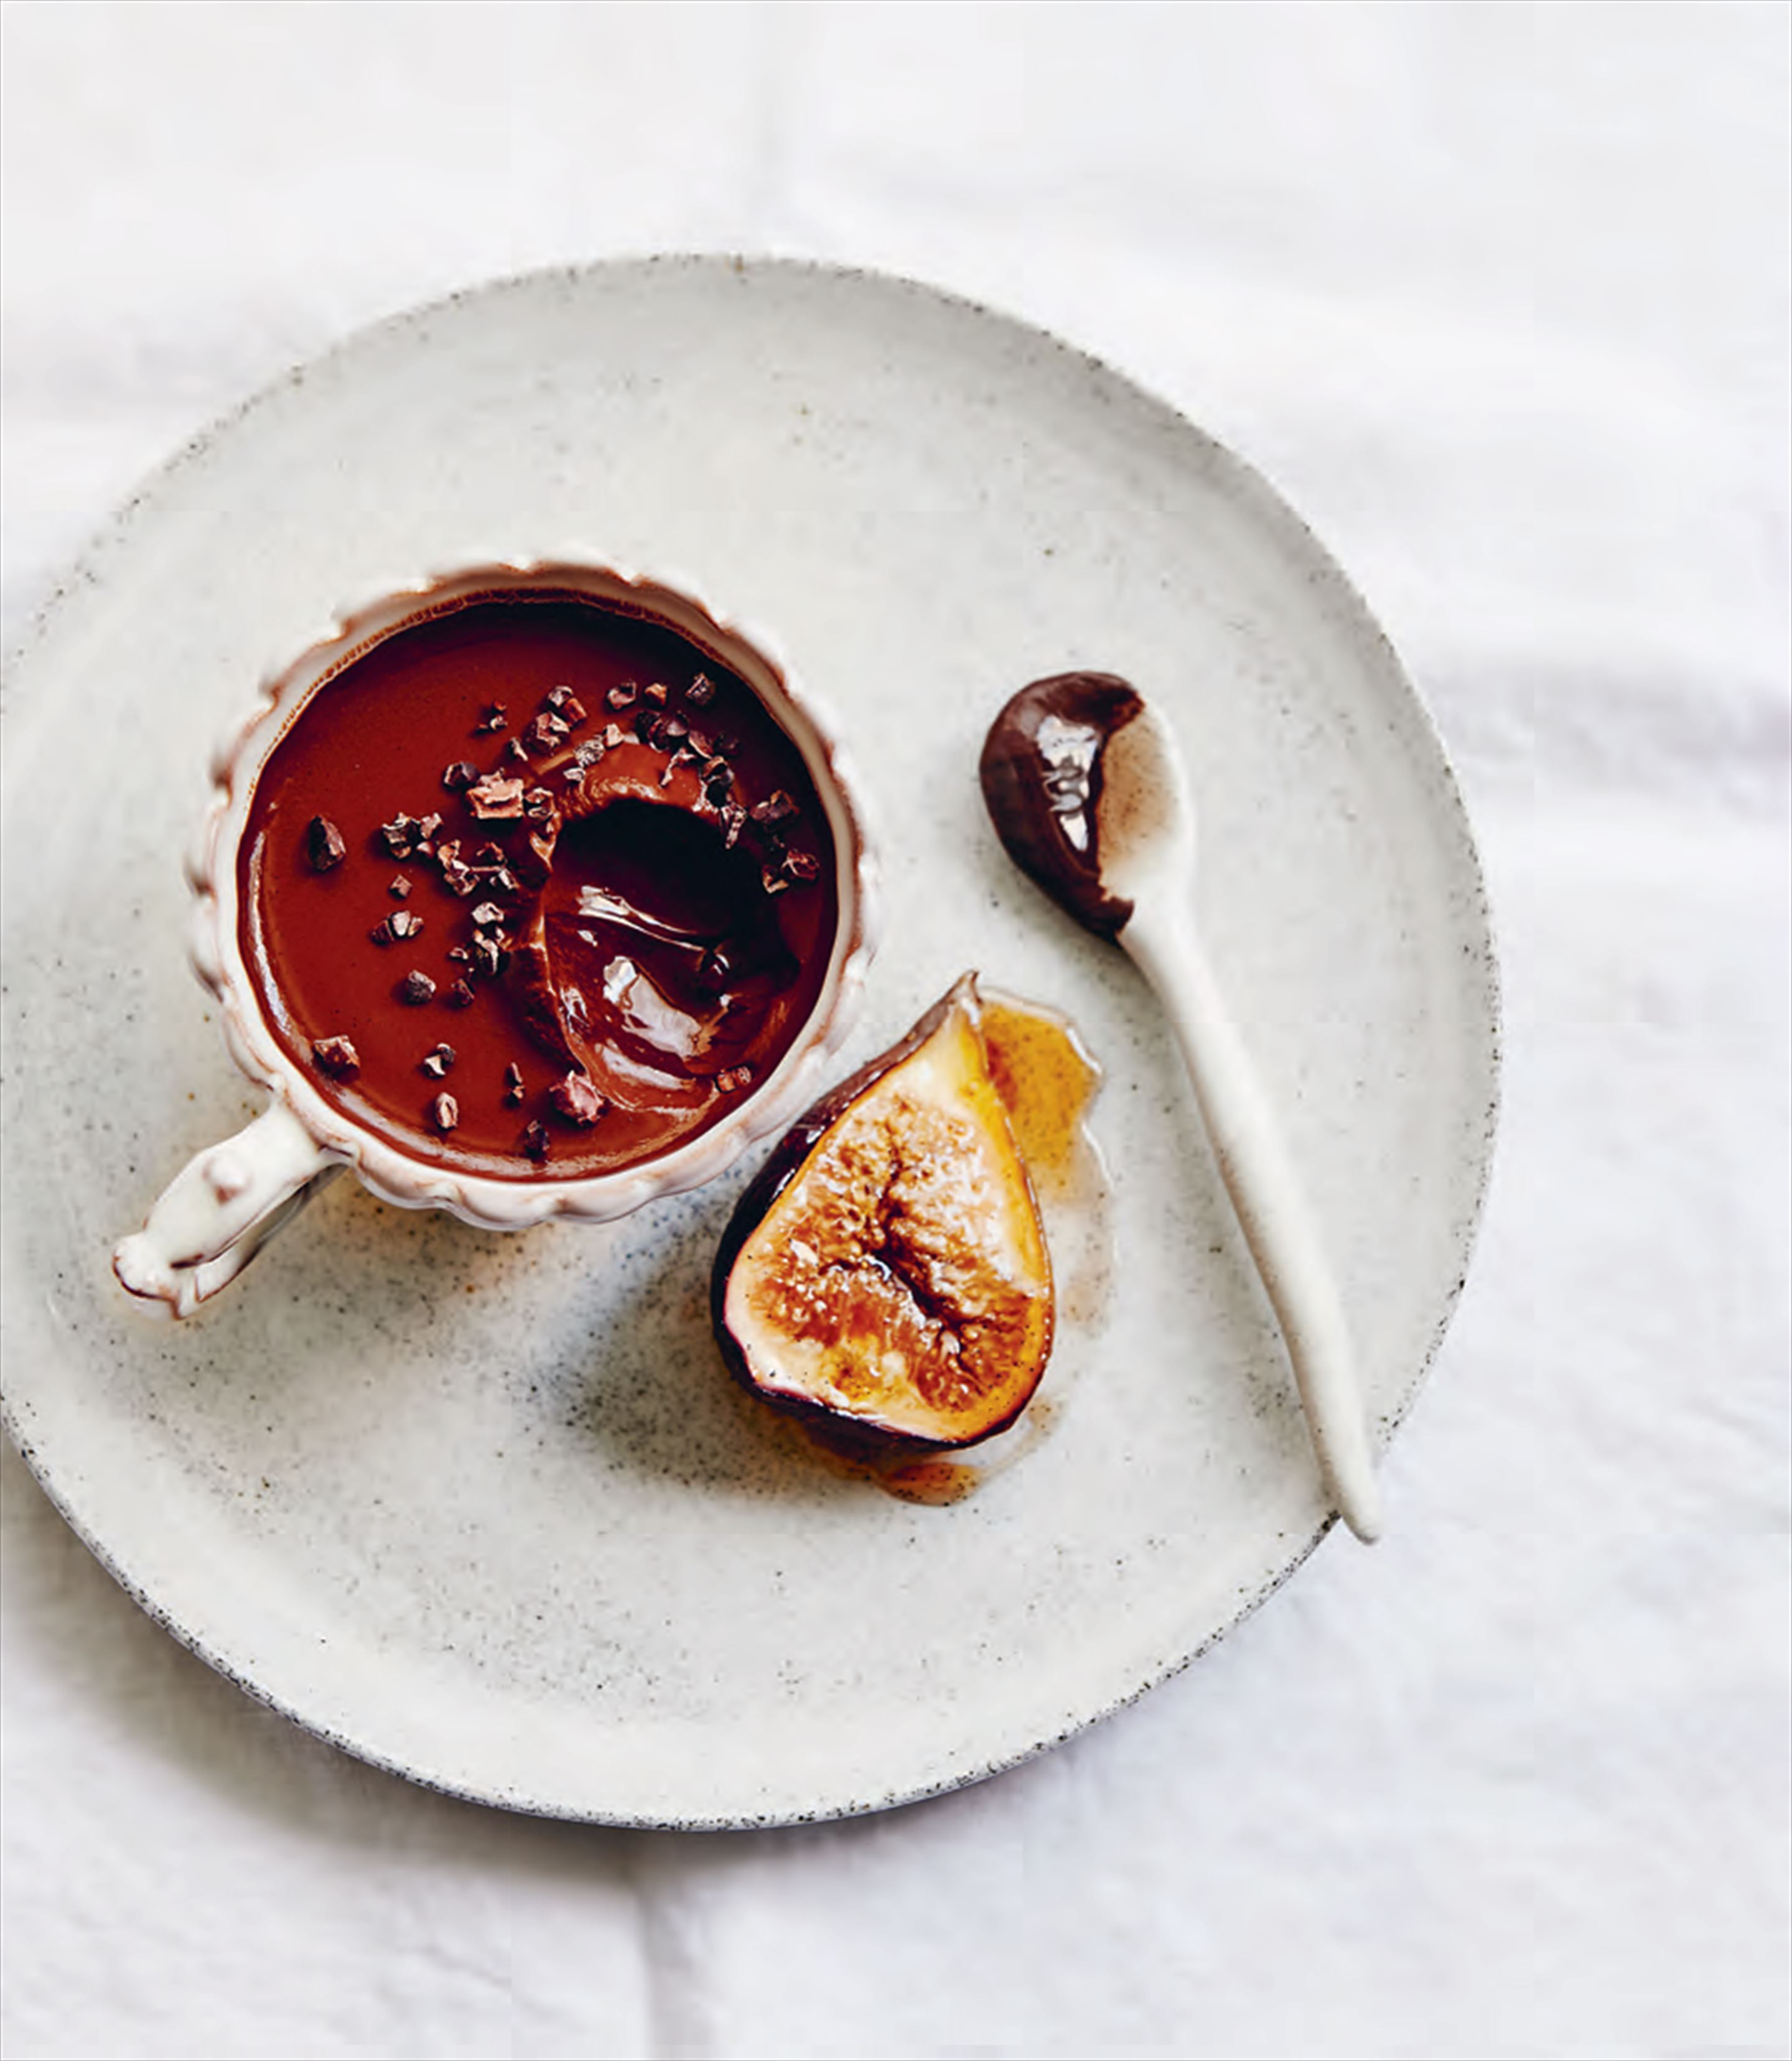 Mocha panna cotta with roasted figs